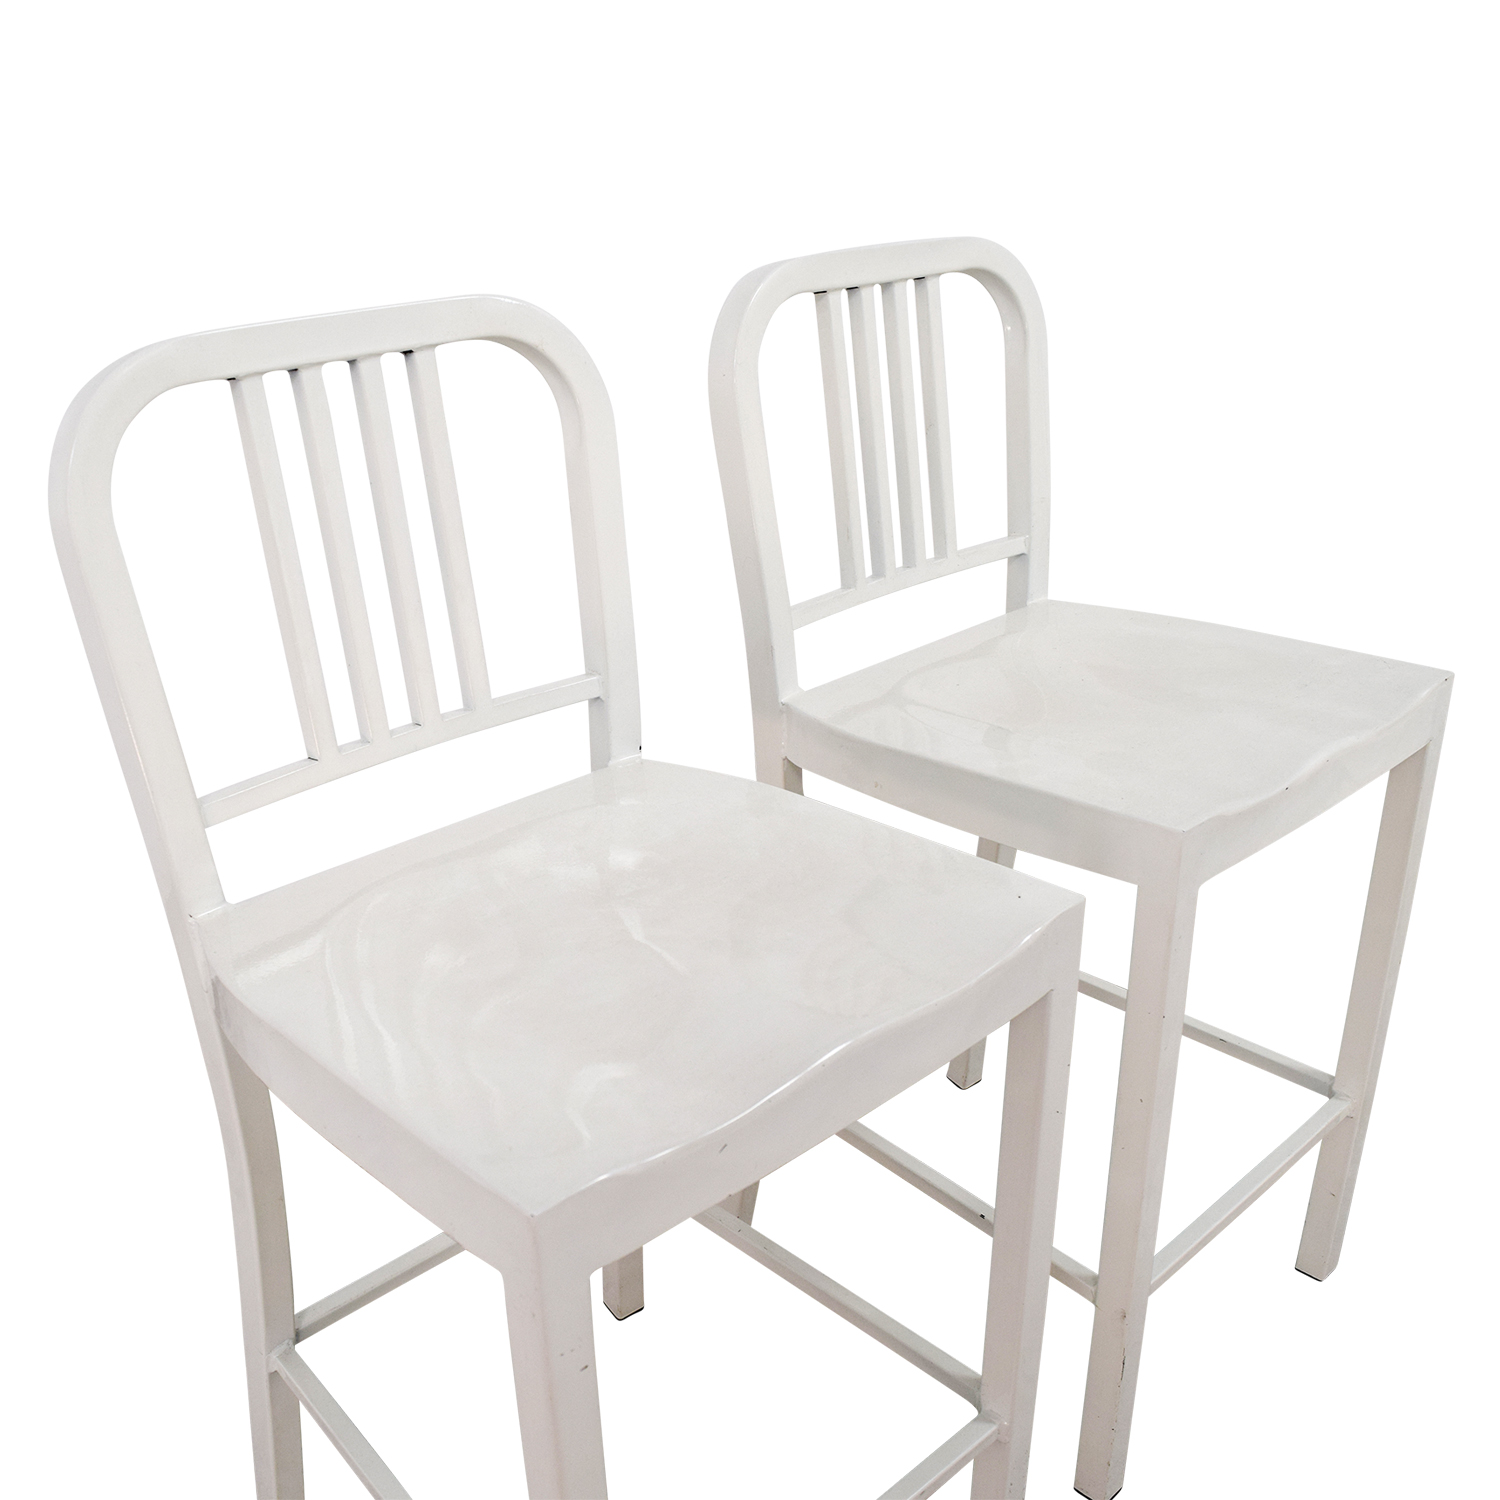 80 OFF  White Metal Chairs  Chairs